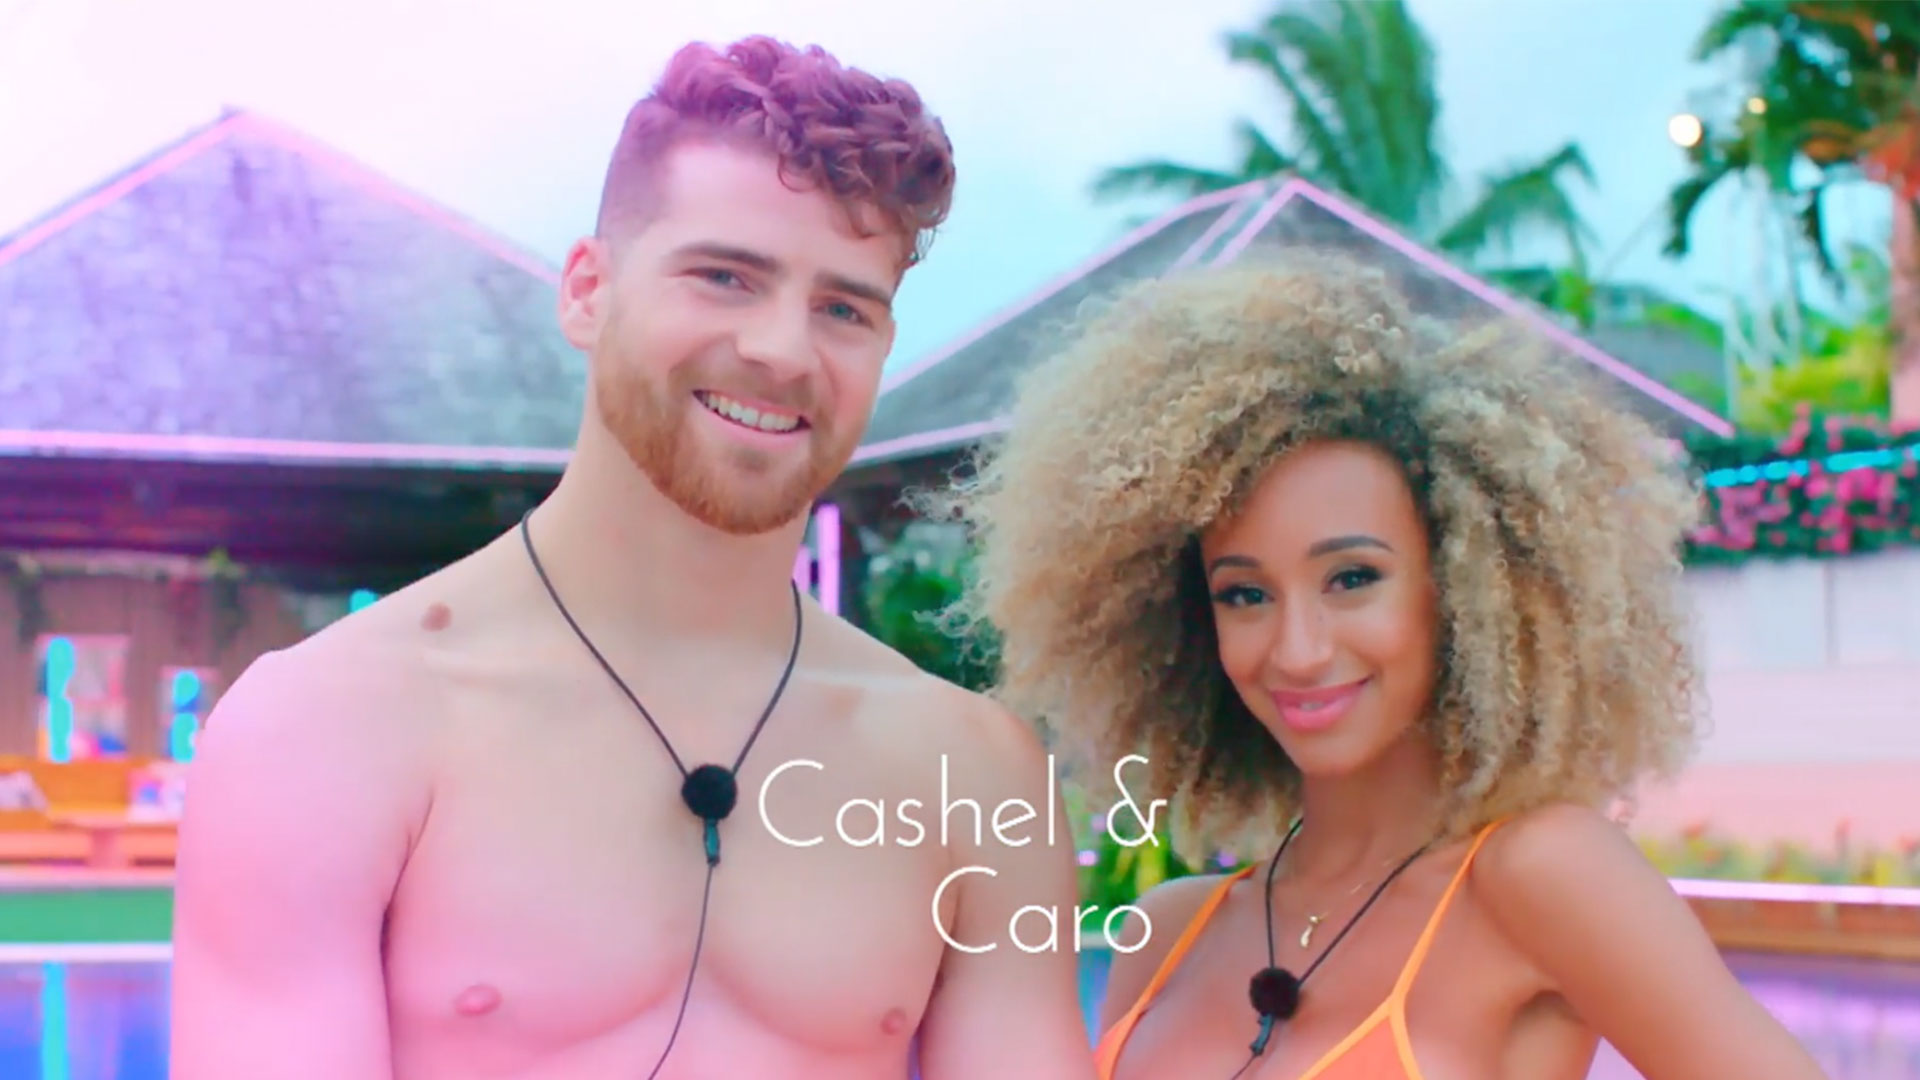 Cashel and Caro